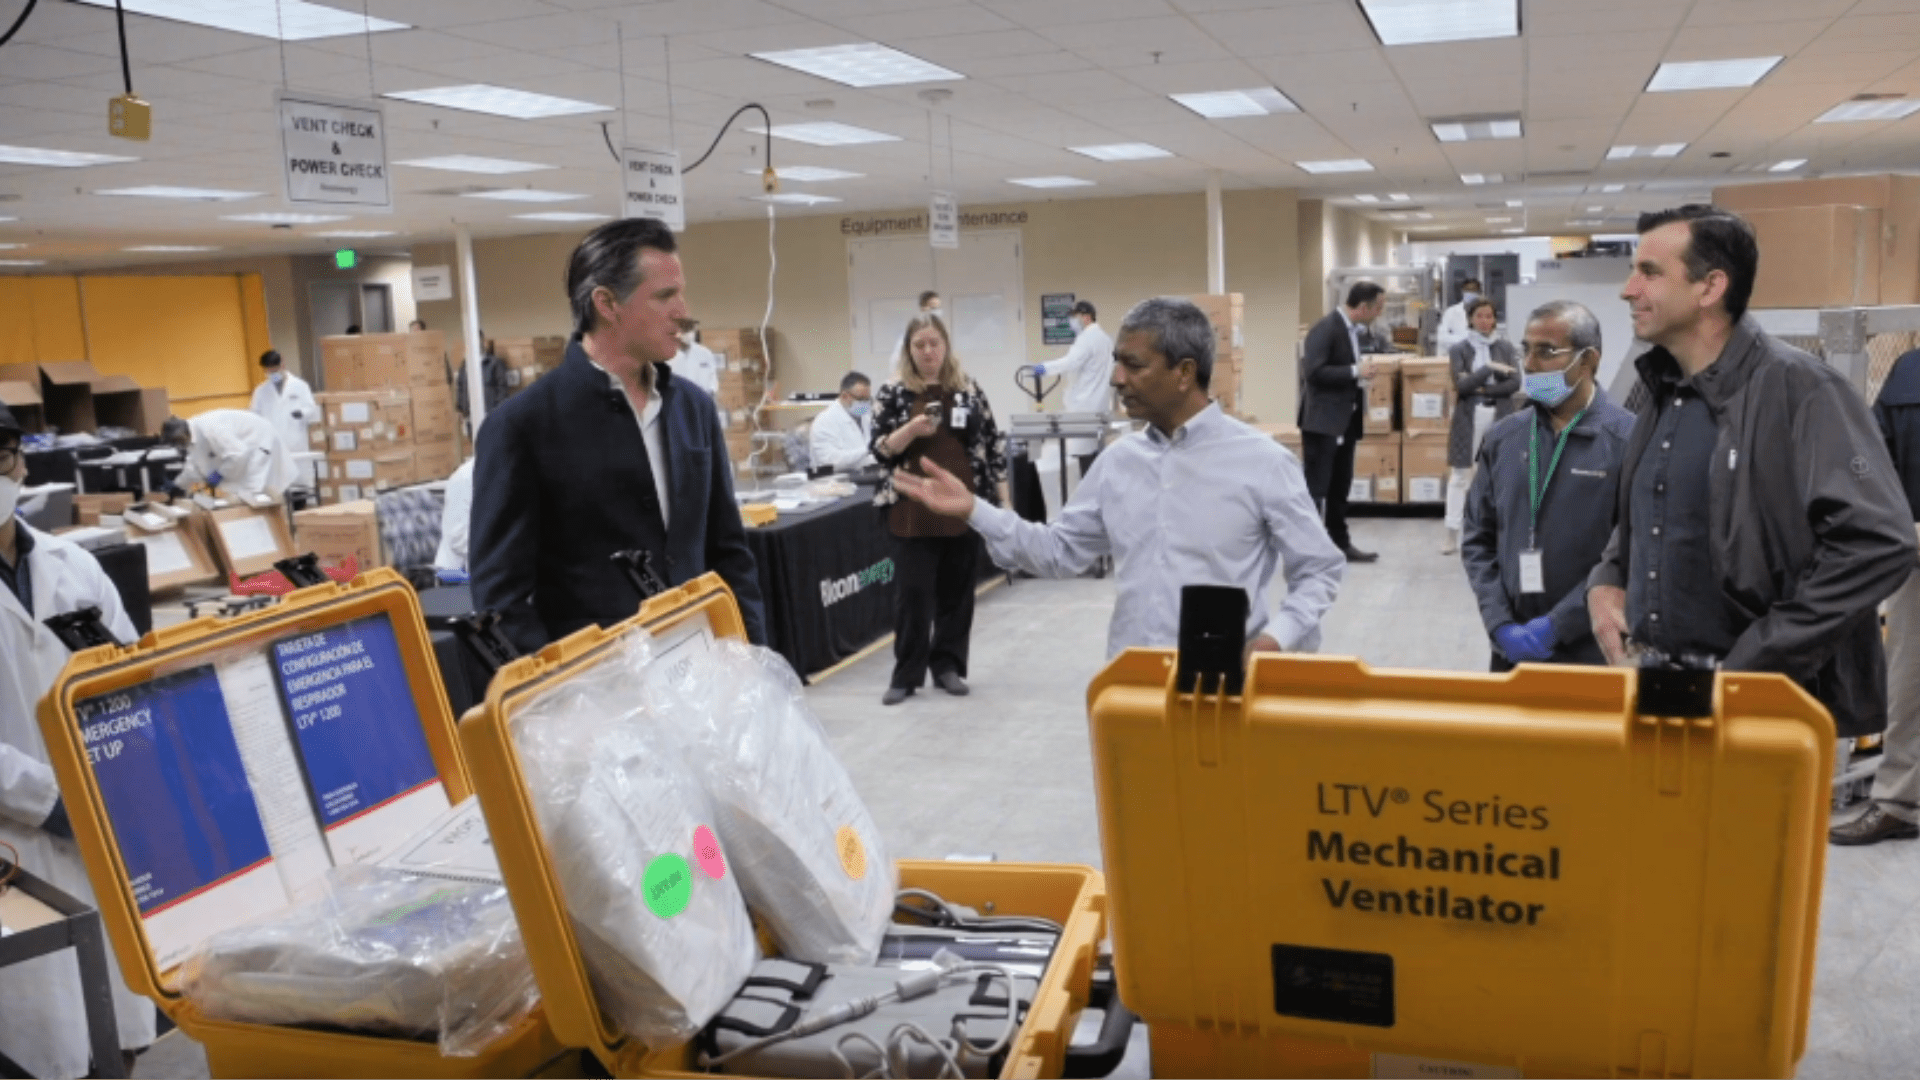 Governor Newsom, Mayor Liccardo and Bloom Energy CEO KR Sridhar visit a ventilator refurbishing site in Sunnyvale on March 28, 2020. Newsom said the state had received 170 broken ventilators from the federal government that are being refurbished by Bloom Energy.(The Office of the Governor)